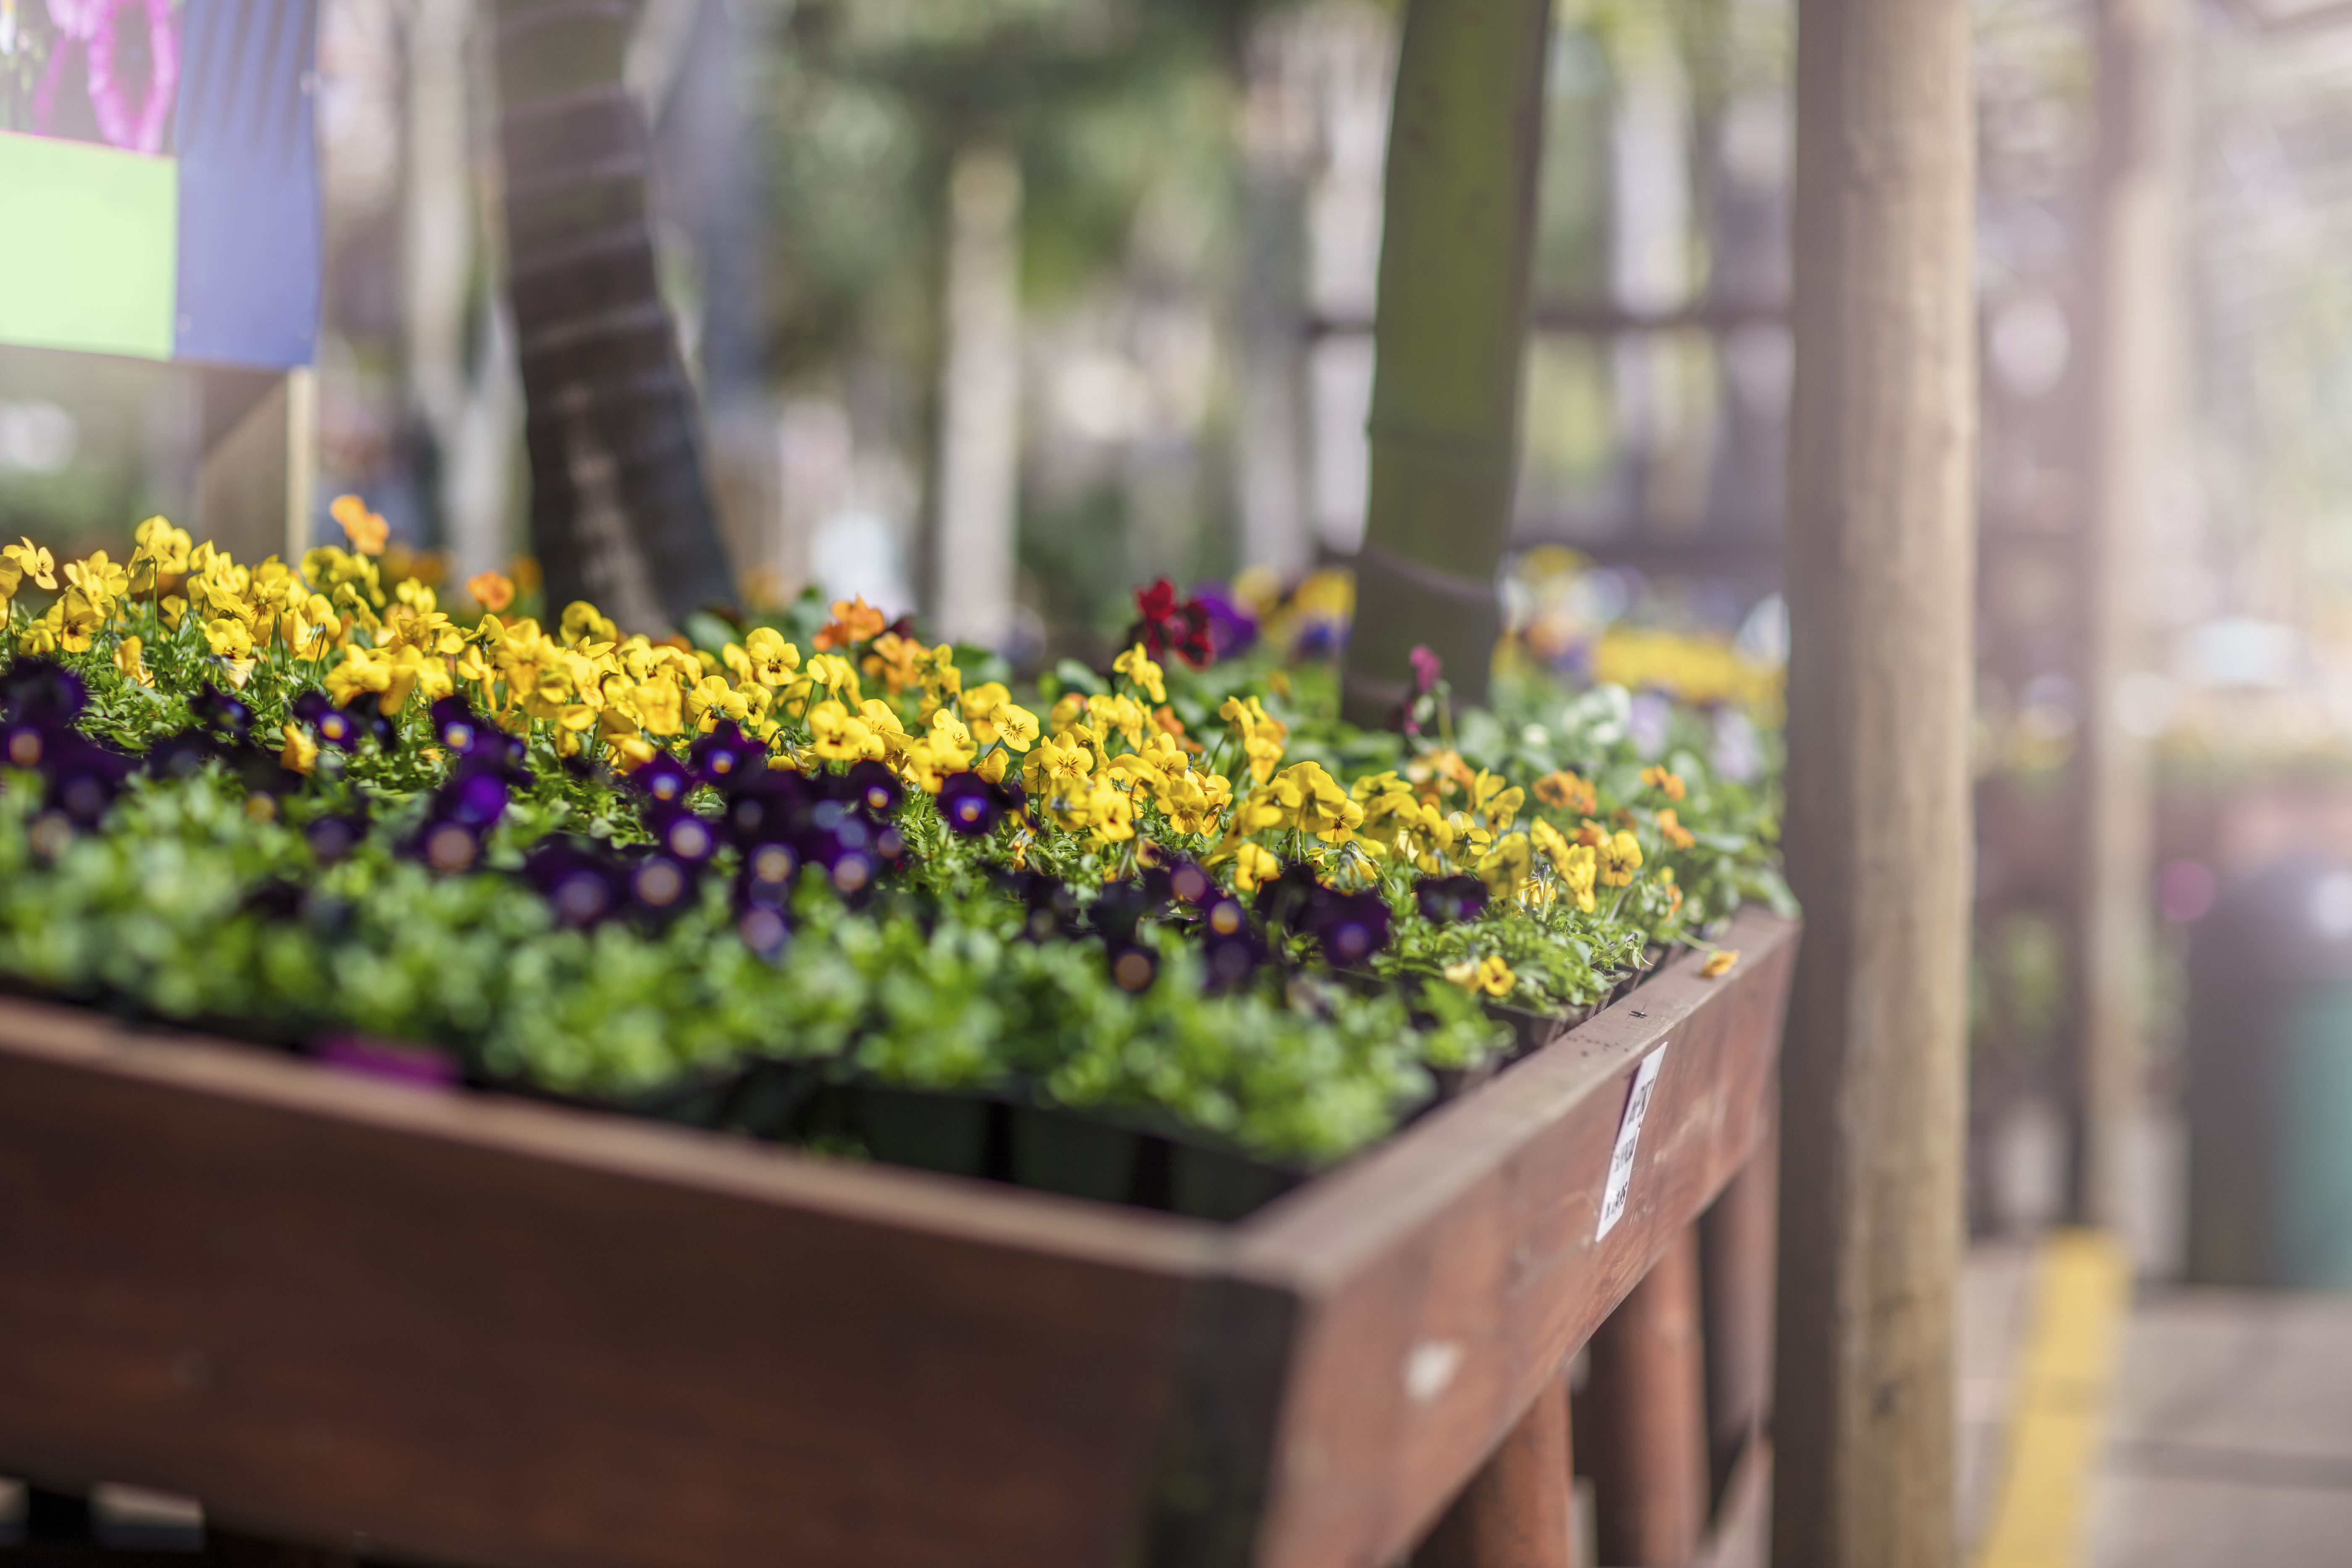 What Type Of Wood Is Needed To Build A Planter Box Home Guides